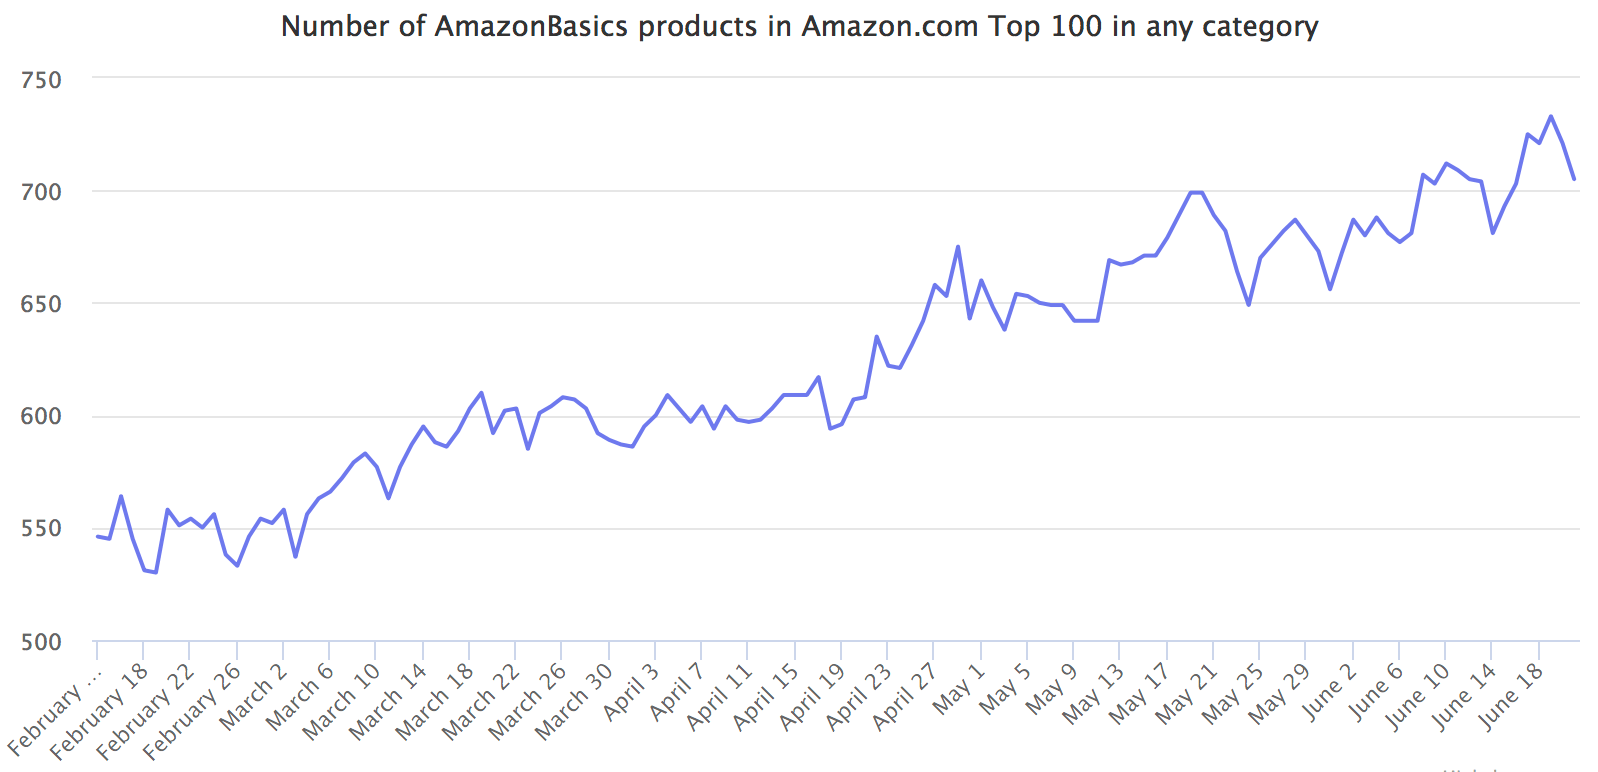 Number of AmazonBasics products in Amazon.com Top 100 in any category